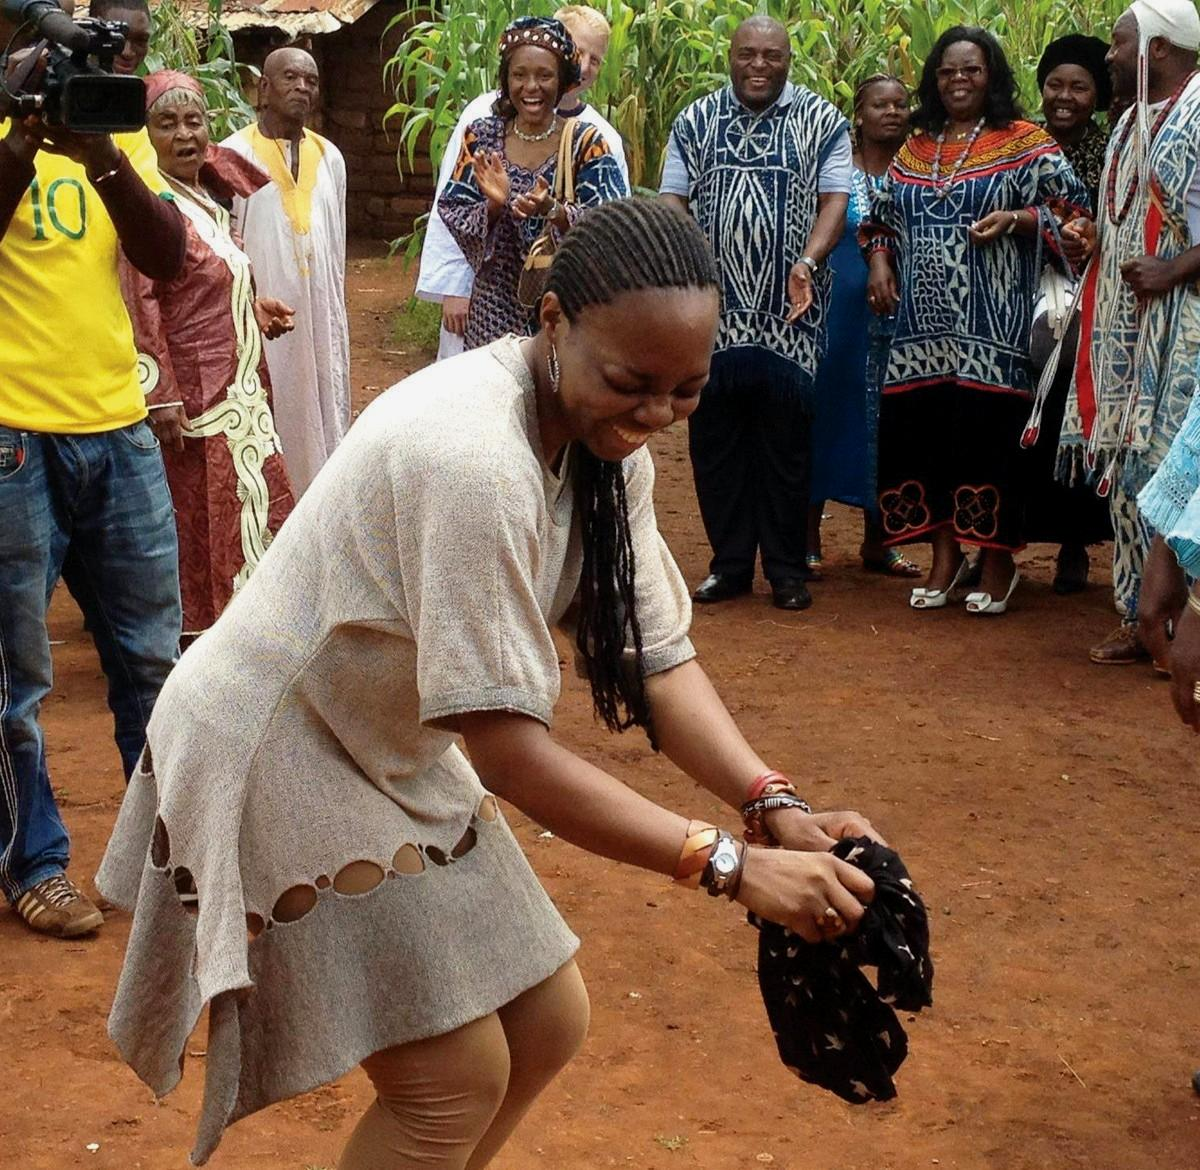 JOYOUS—Marianne Bema dances in Cameroon, Central Africa where she grew up. Bema now runs the business, Bantu Arts Atelier For Kids.